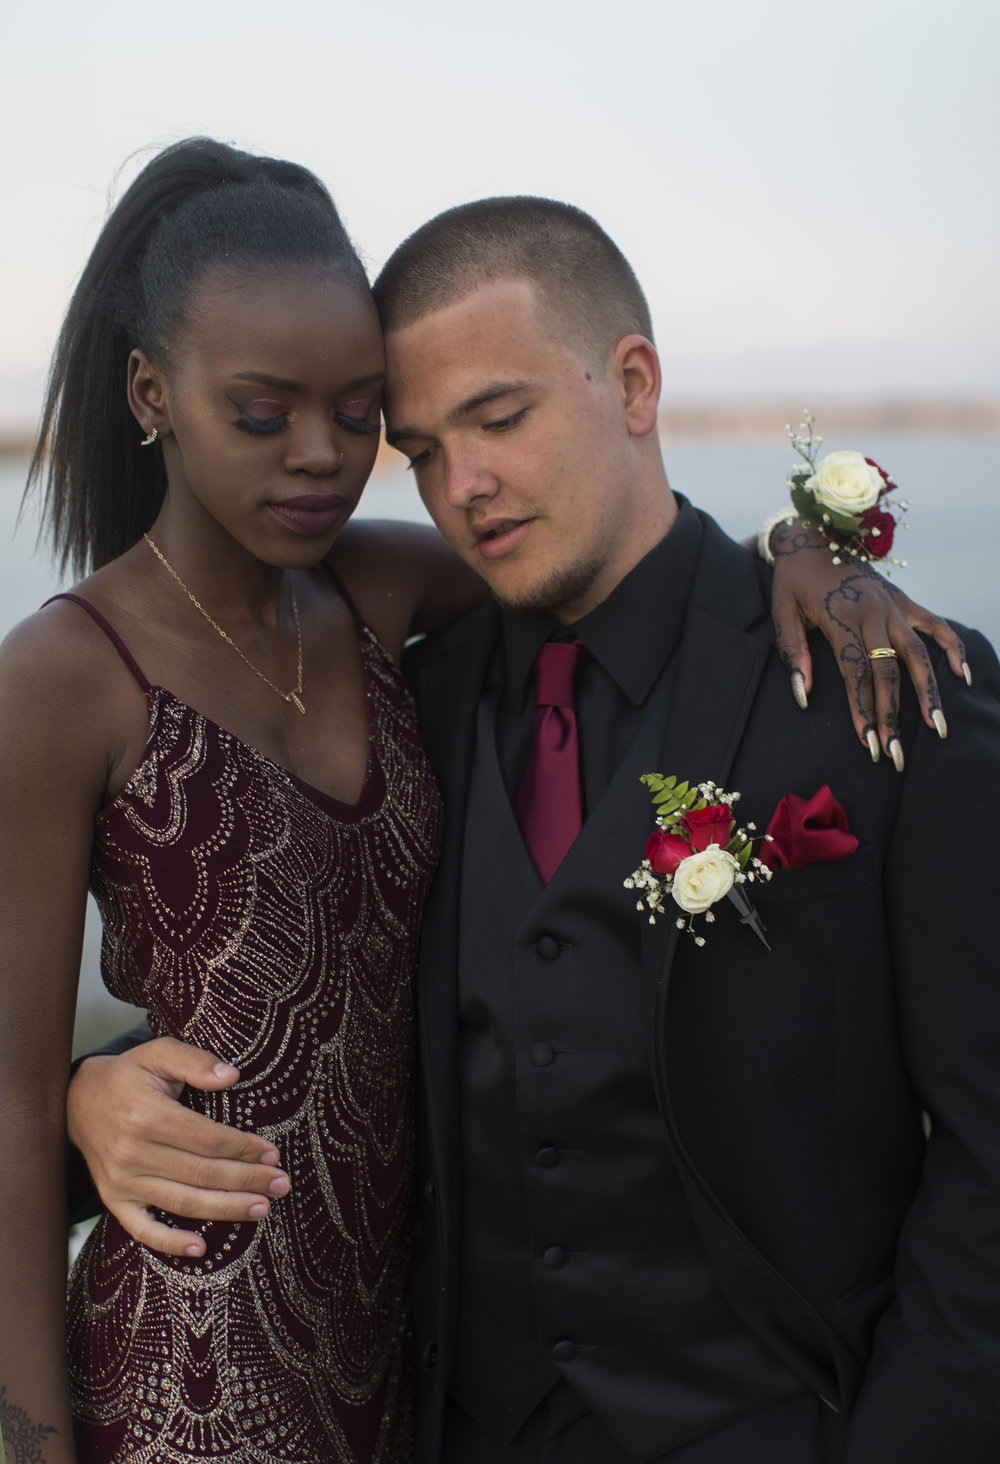 Casco Bay High prom night in Portland, Maine. May 12, 2018.    Marlin Pamba, left, and Tariq Assales.